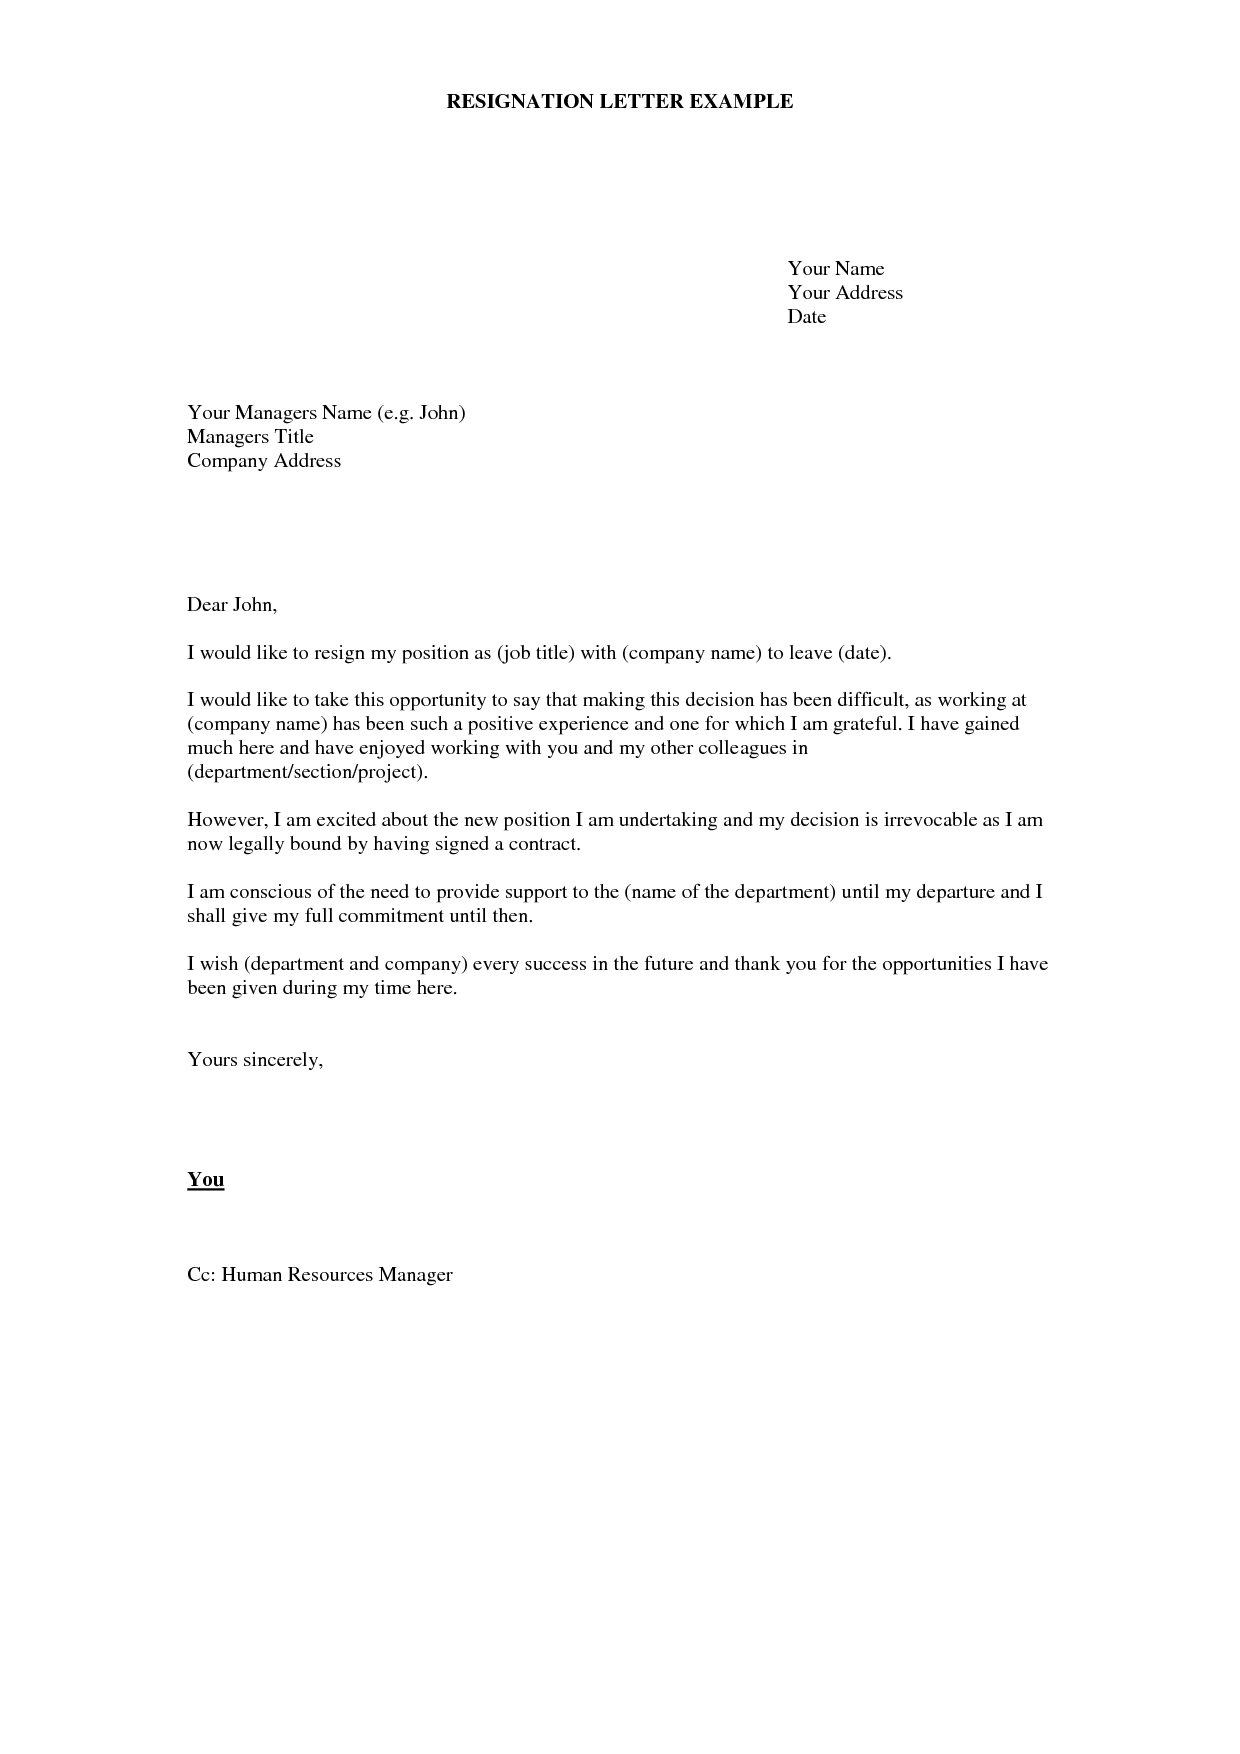 resignation letter examples heartfelt professional resume cover resignation letter examples heartfelt resignation letters letter of resignation templates letter of resignation how to write